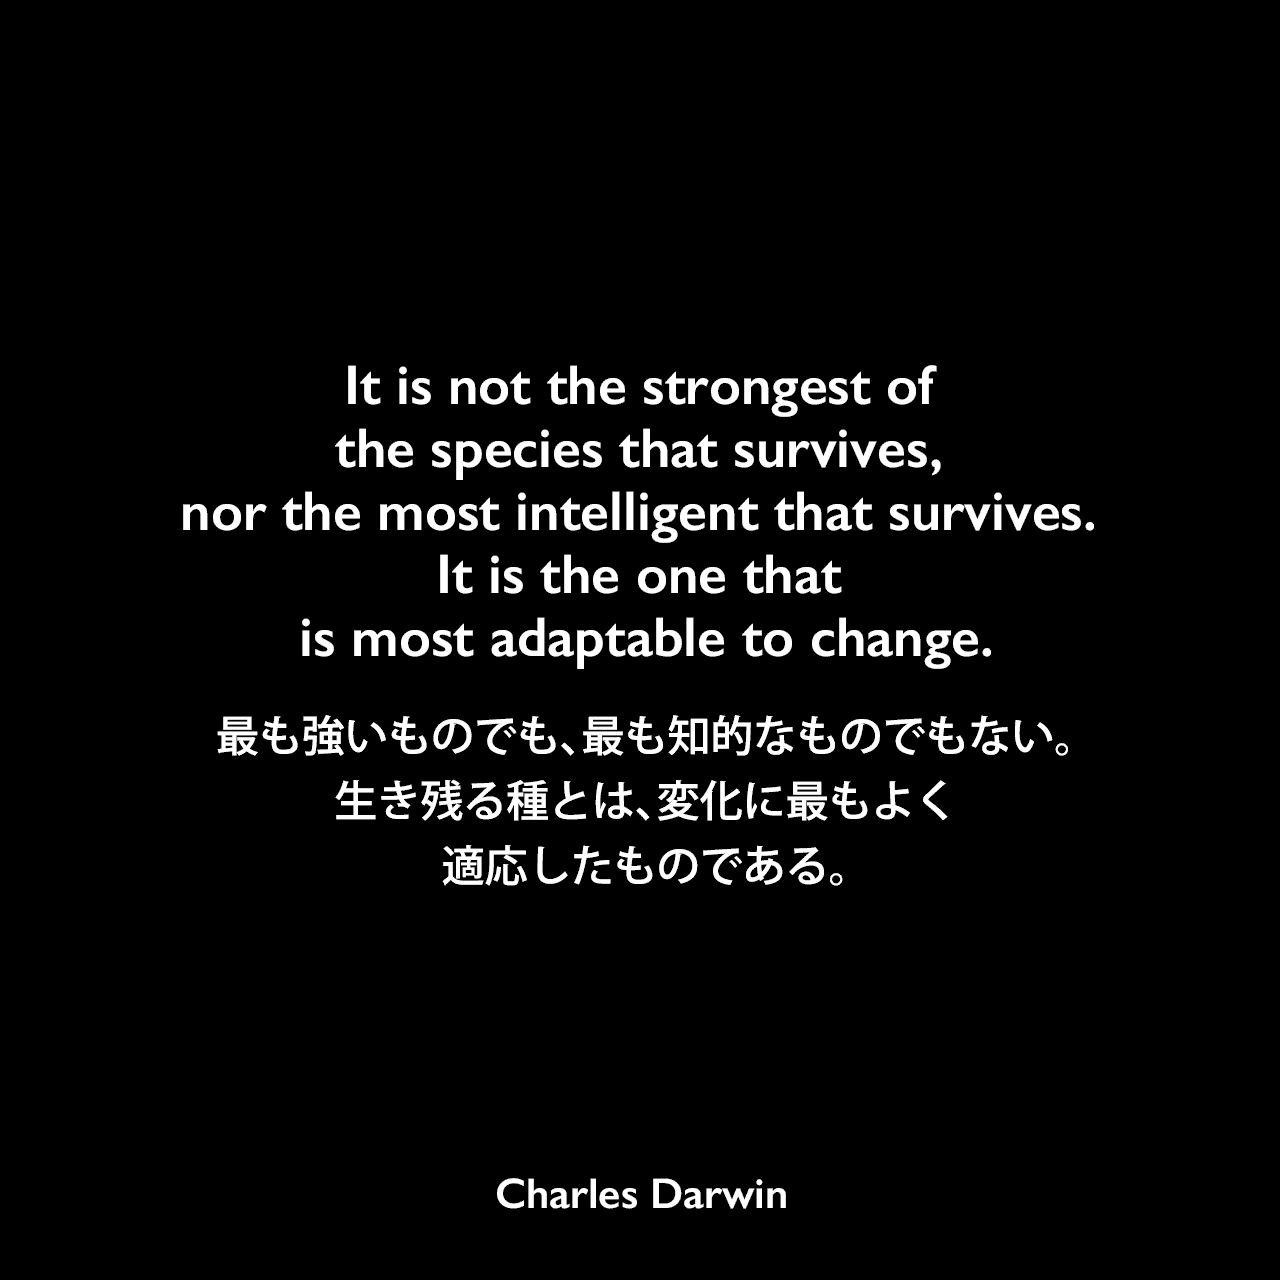 It is not the strongest of the species that survives, nor the most intelligent that survives. It is the one that is most adaptable to change.最も強いものでも、最も知的なものでもない。生き残る種とは、変化に最もよく適応したものである。Charles Darwin